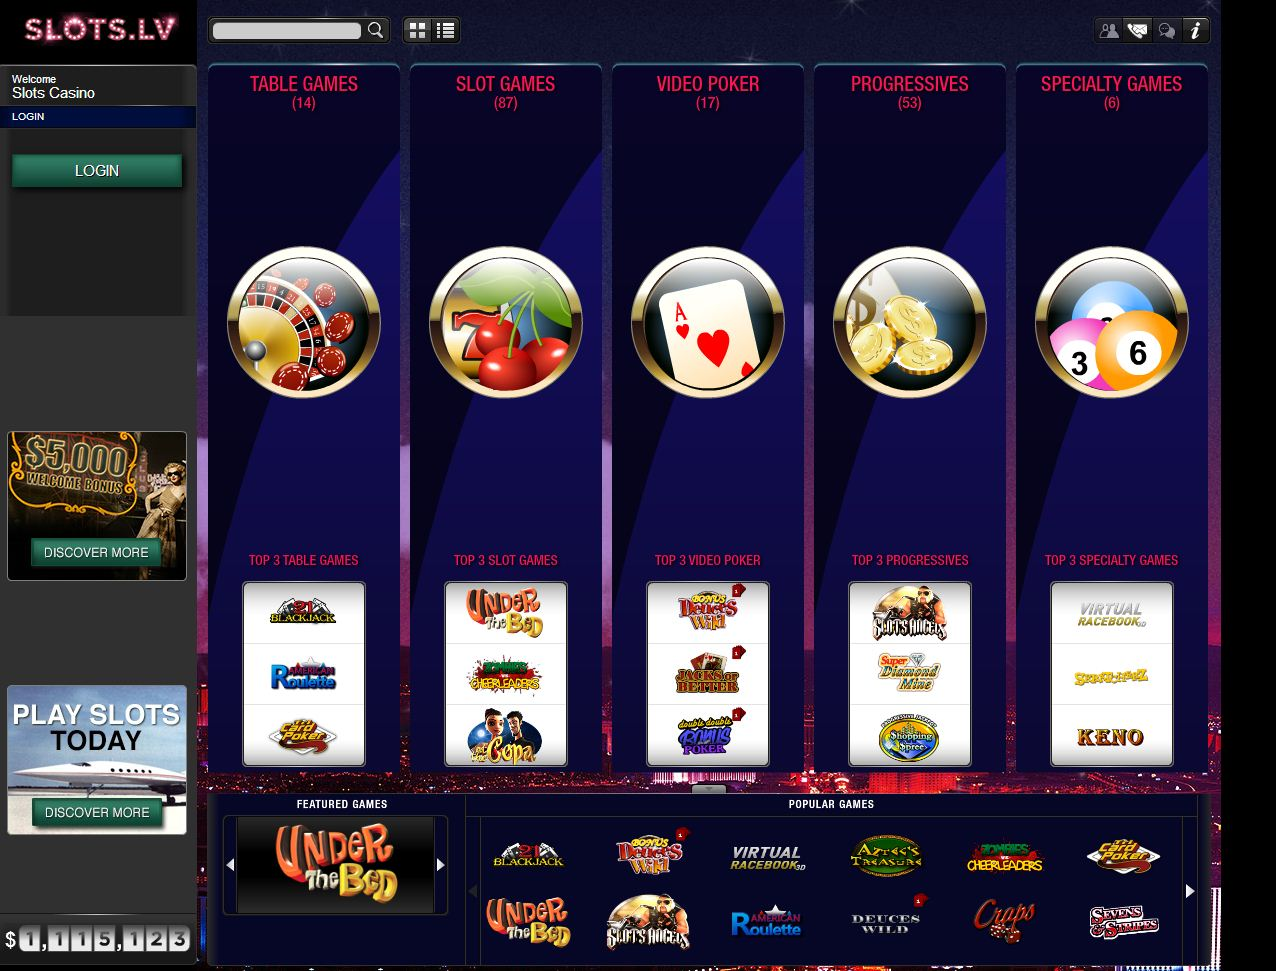 Slots.lv Casino Review – Top Site for USA & Canadian Players